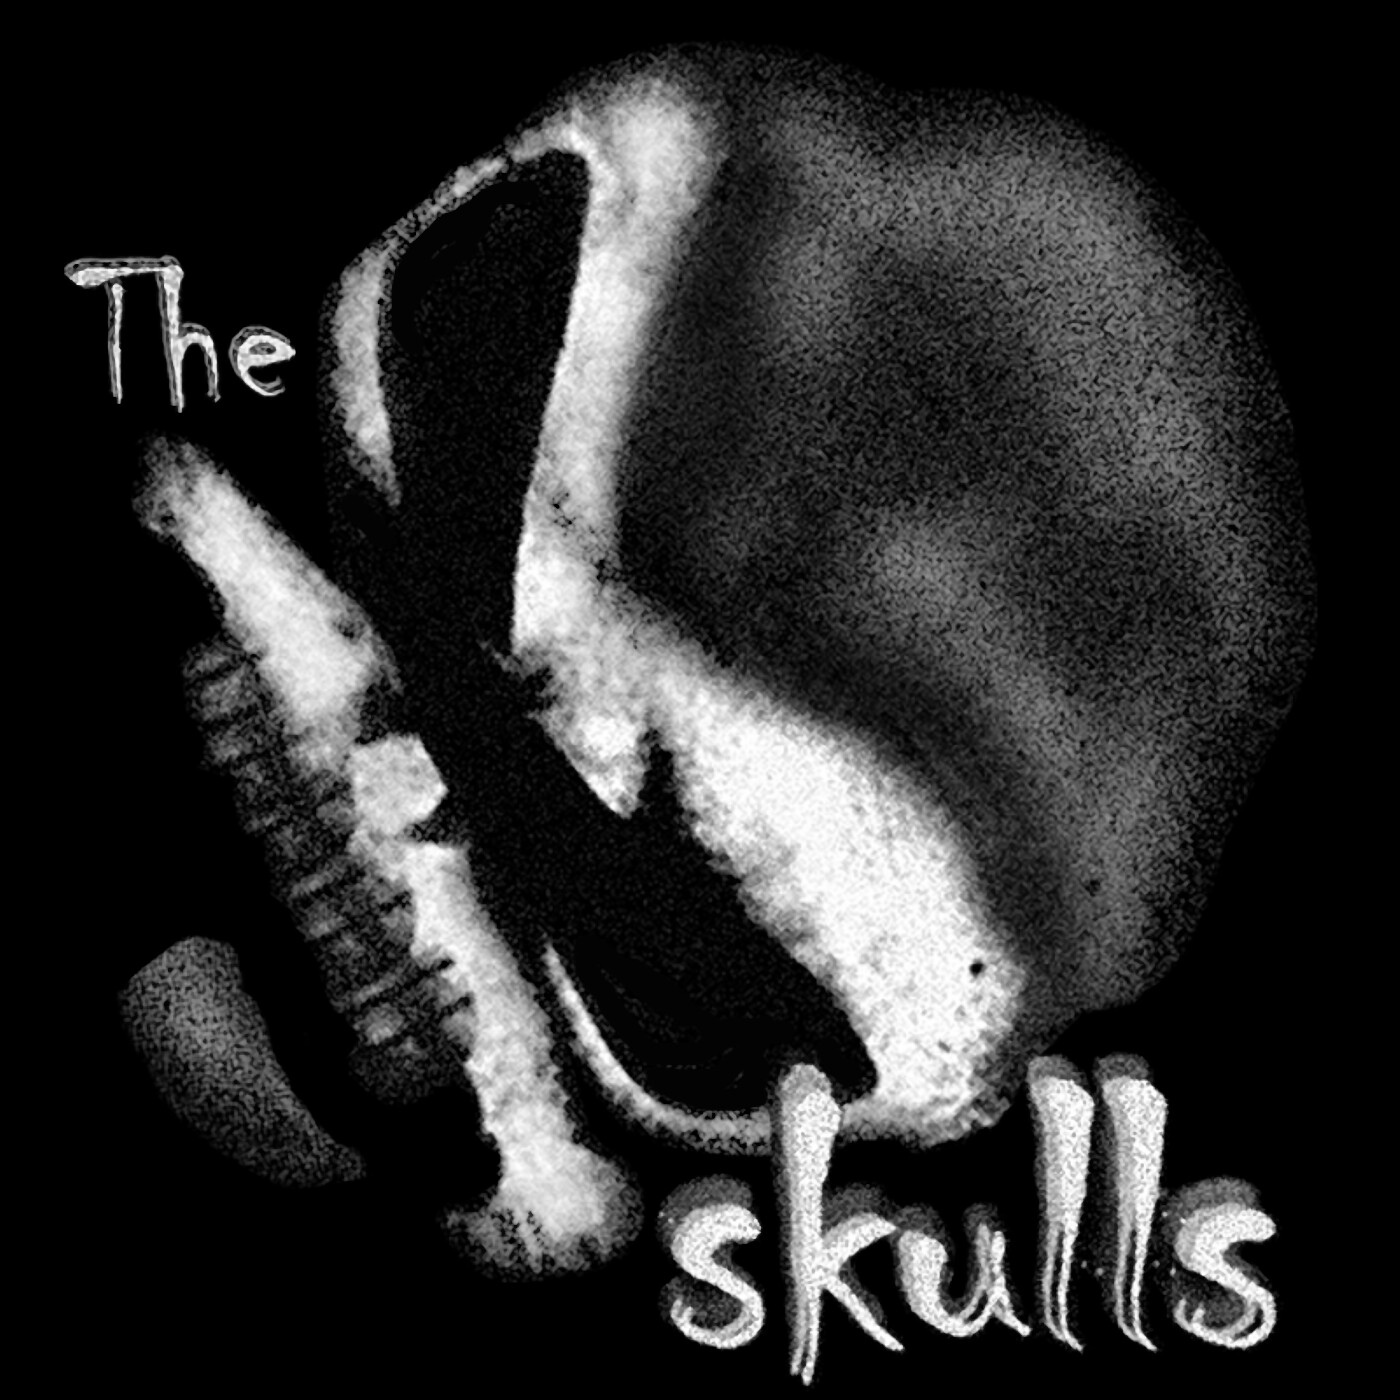 the13skullspodcast